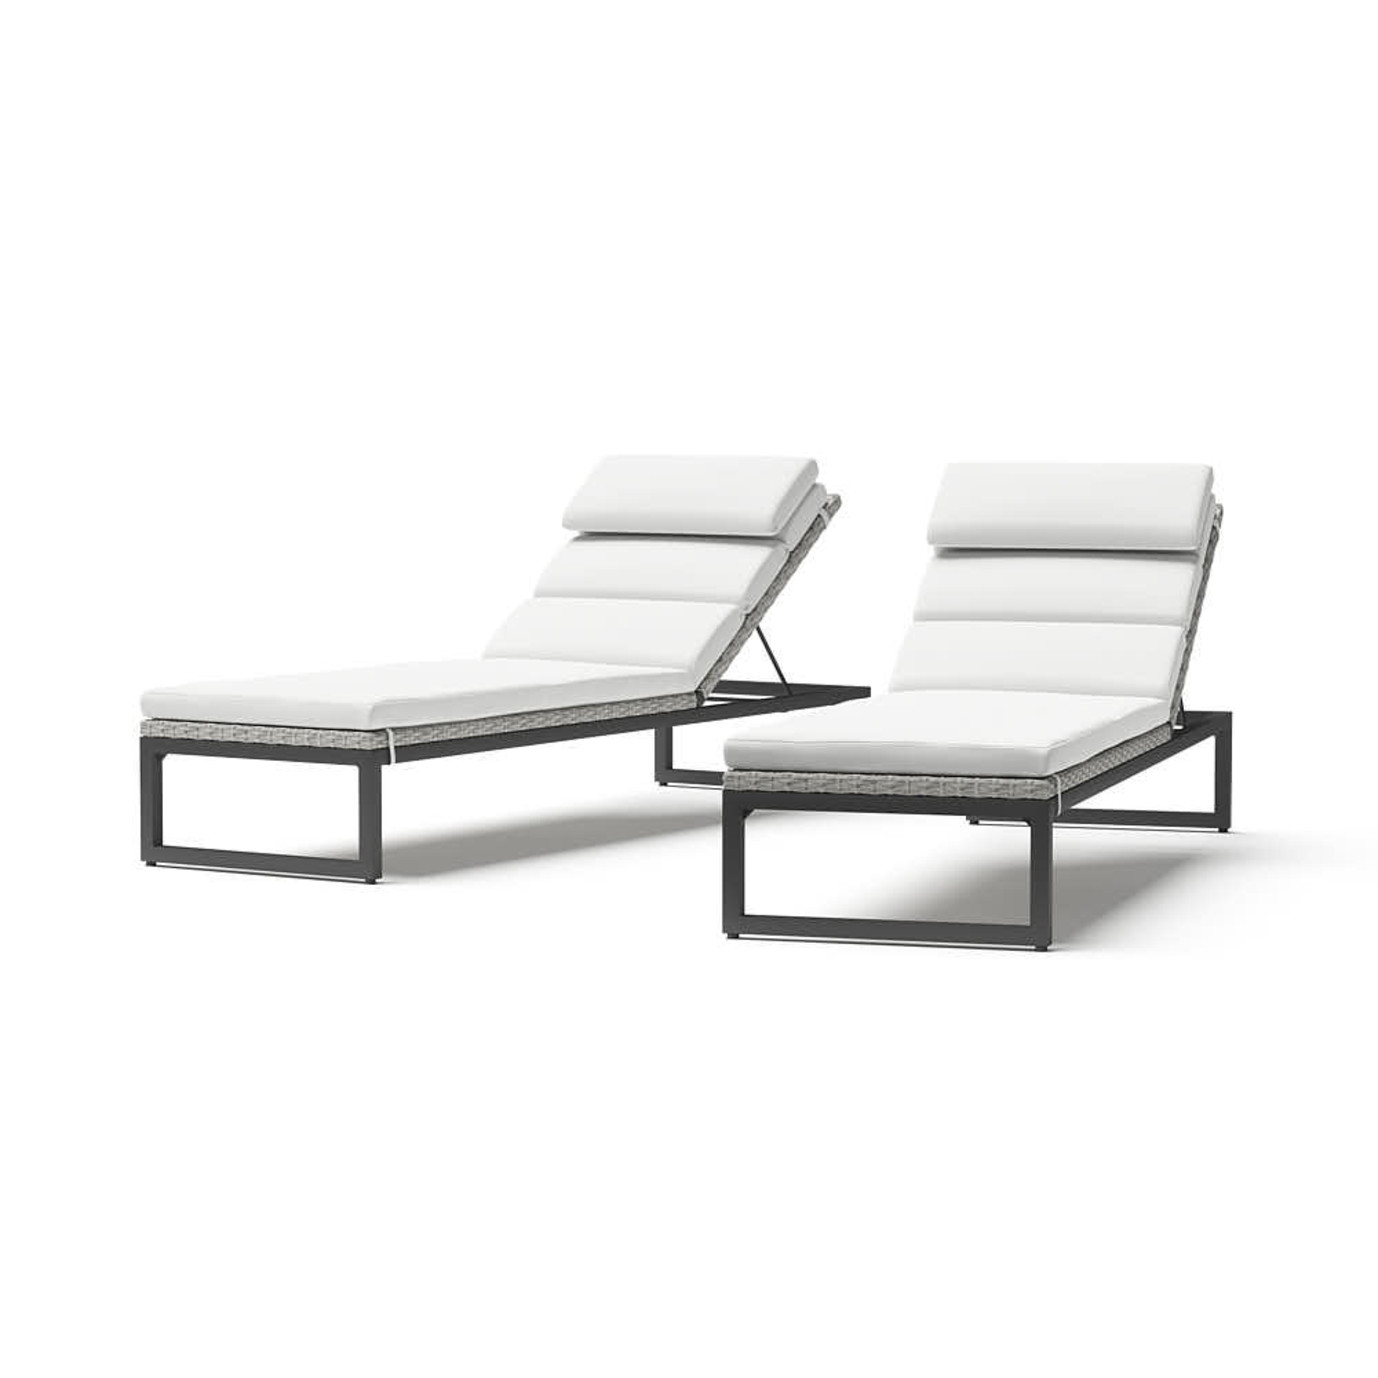 Milo™ Gray Chaise Lounges